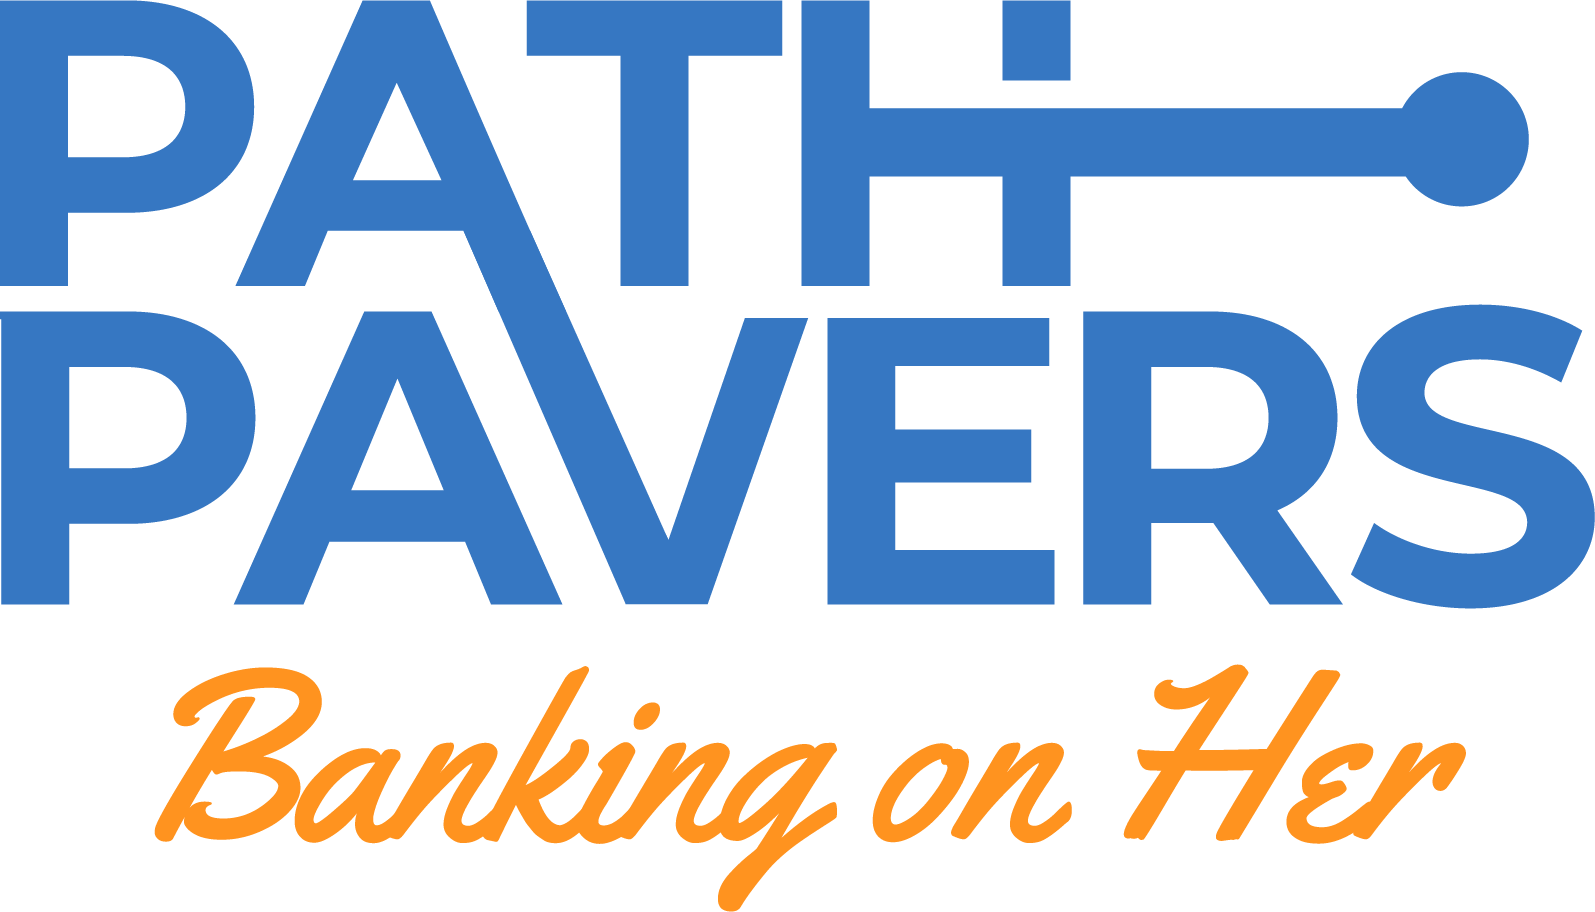 Path Pavers: Banking on Her